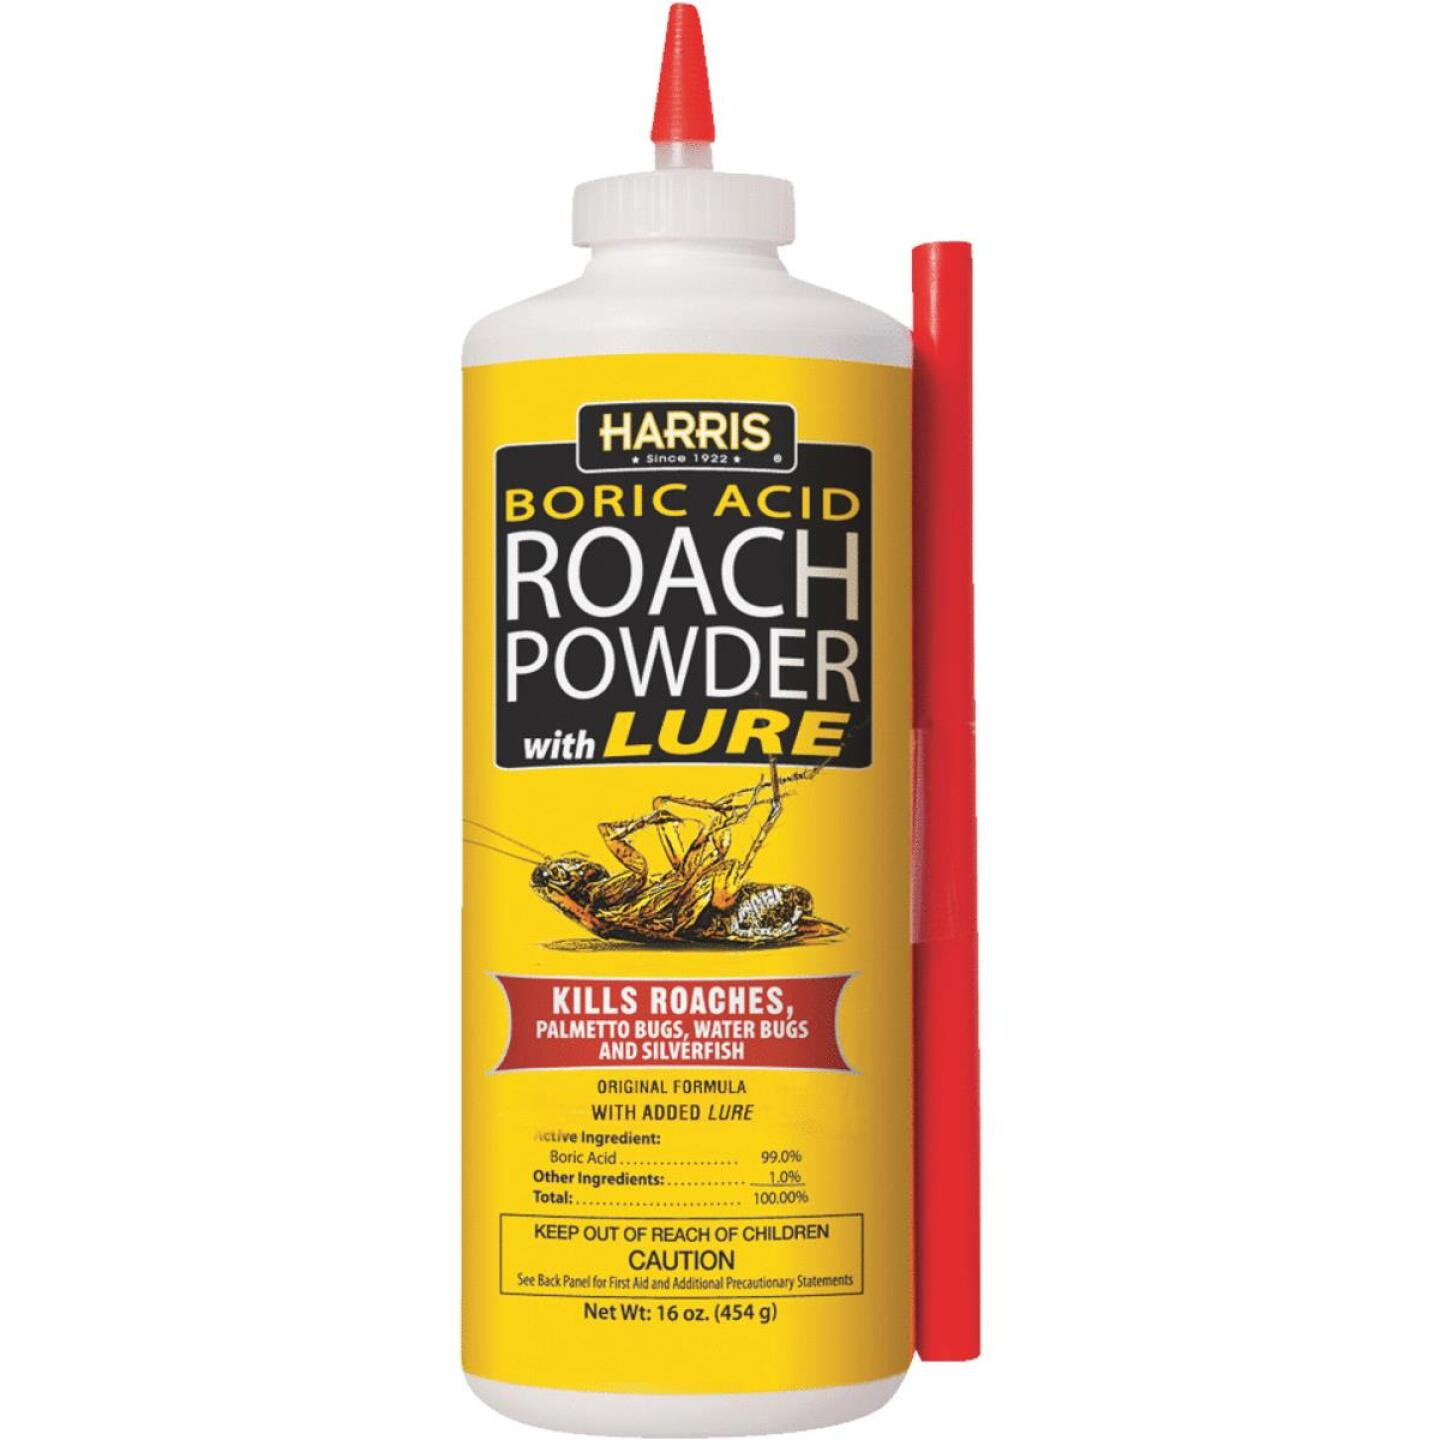 Harris 16 Oz. Ready To Use Powder Boric Acid Roach Killer with Applicator Image 1